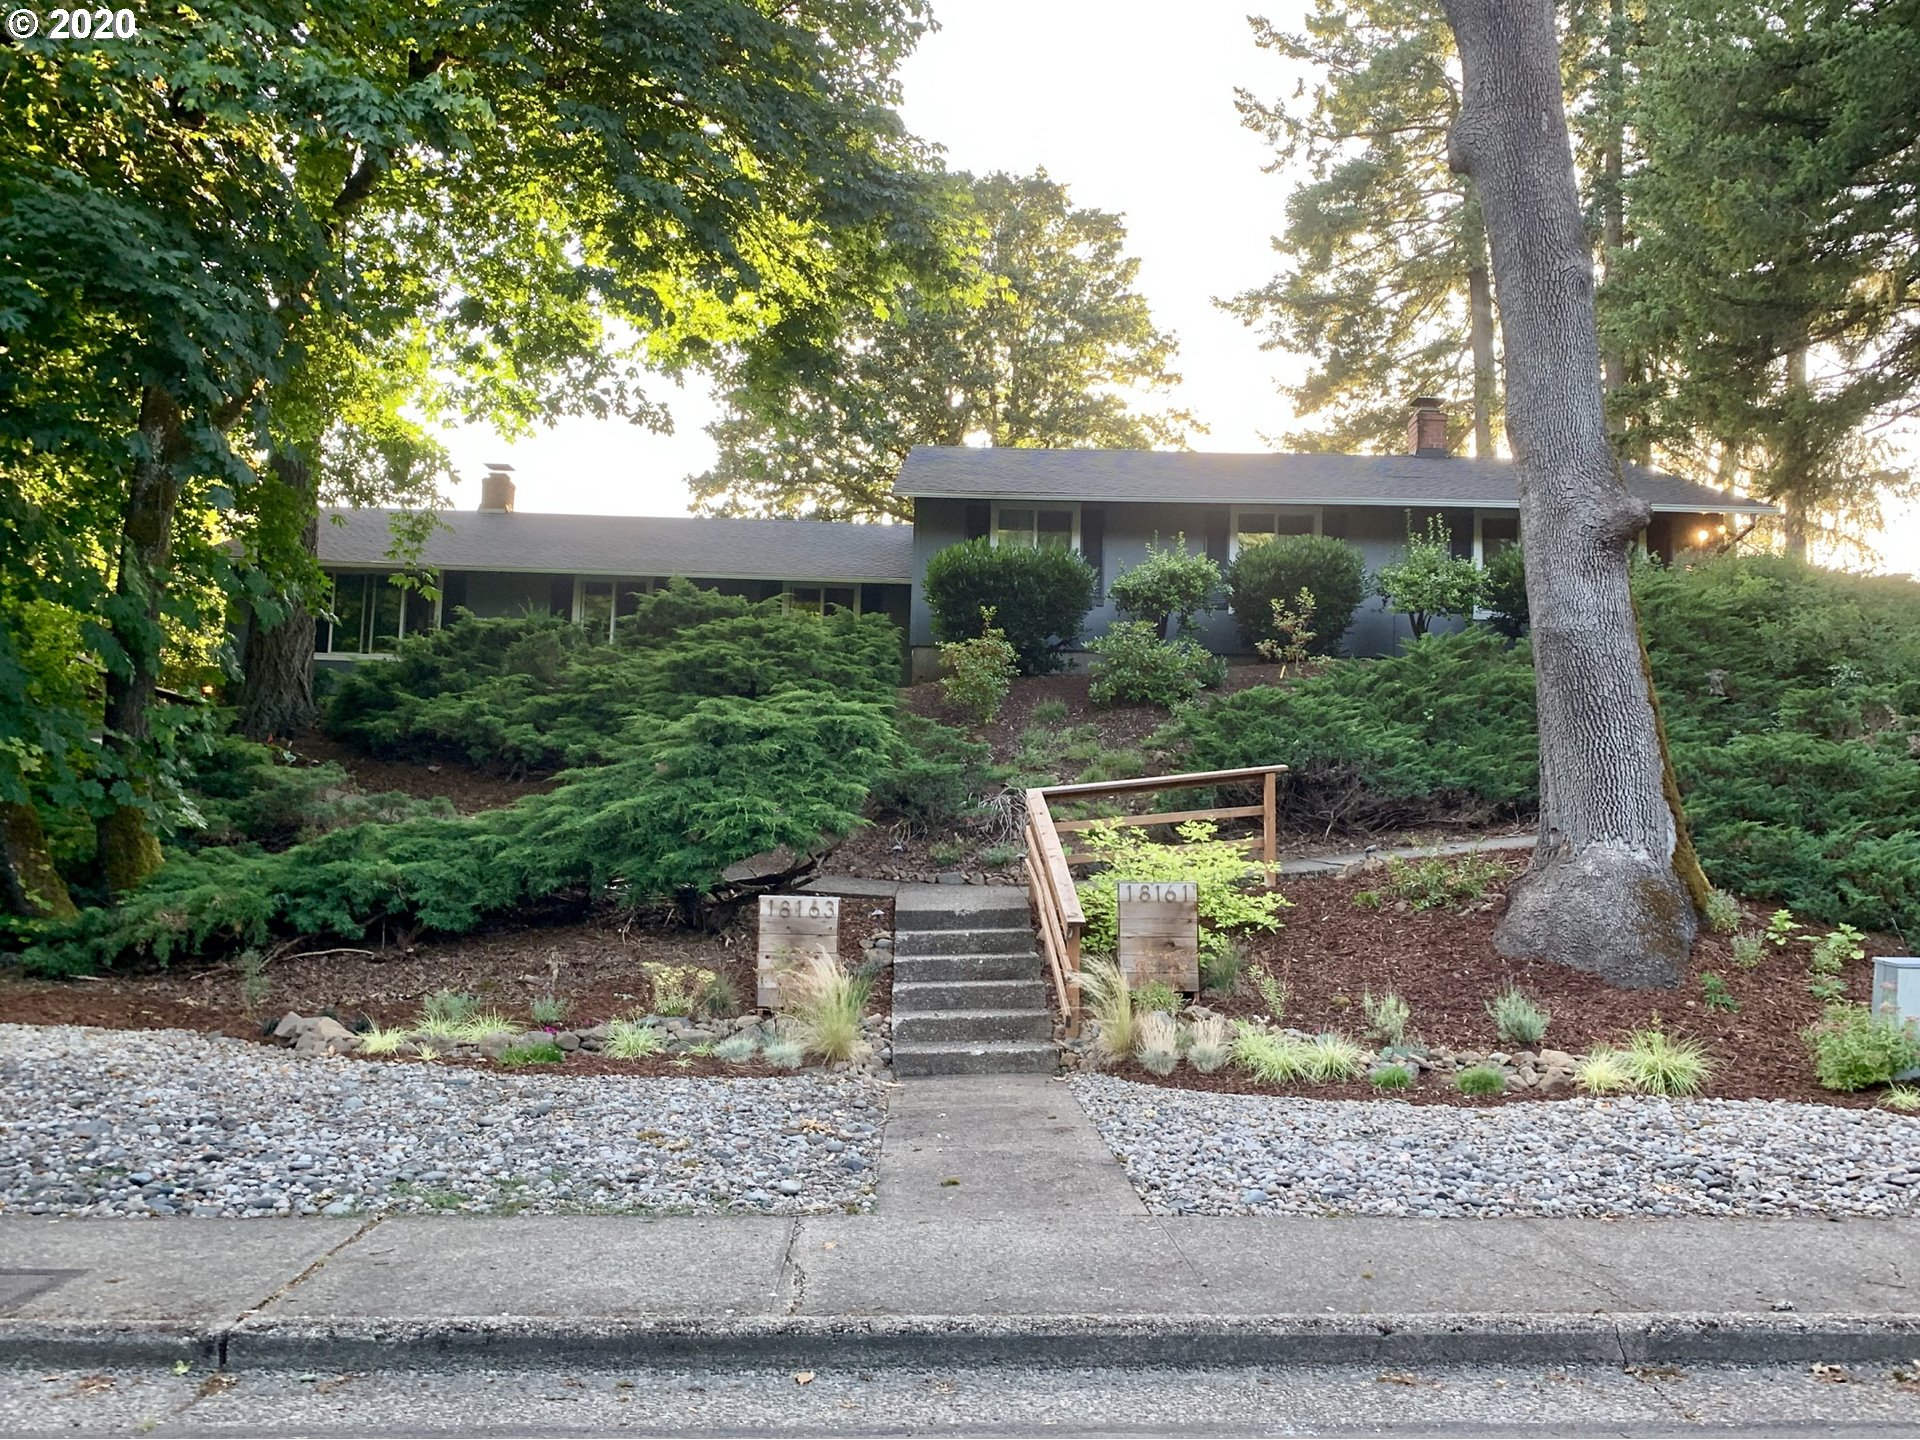 Photo for 18161 DEERBRUSH AVE, Lake Oswego, OR 97035 (MLS # 20501002)